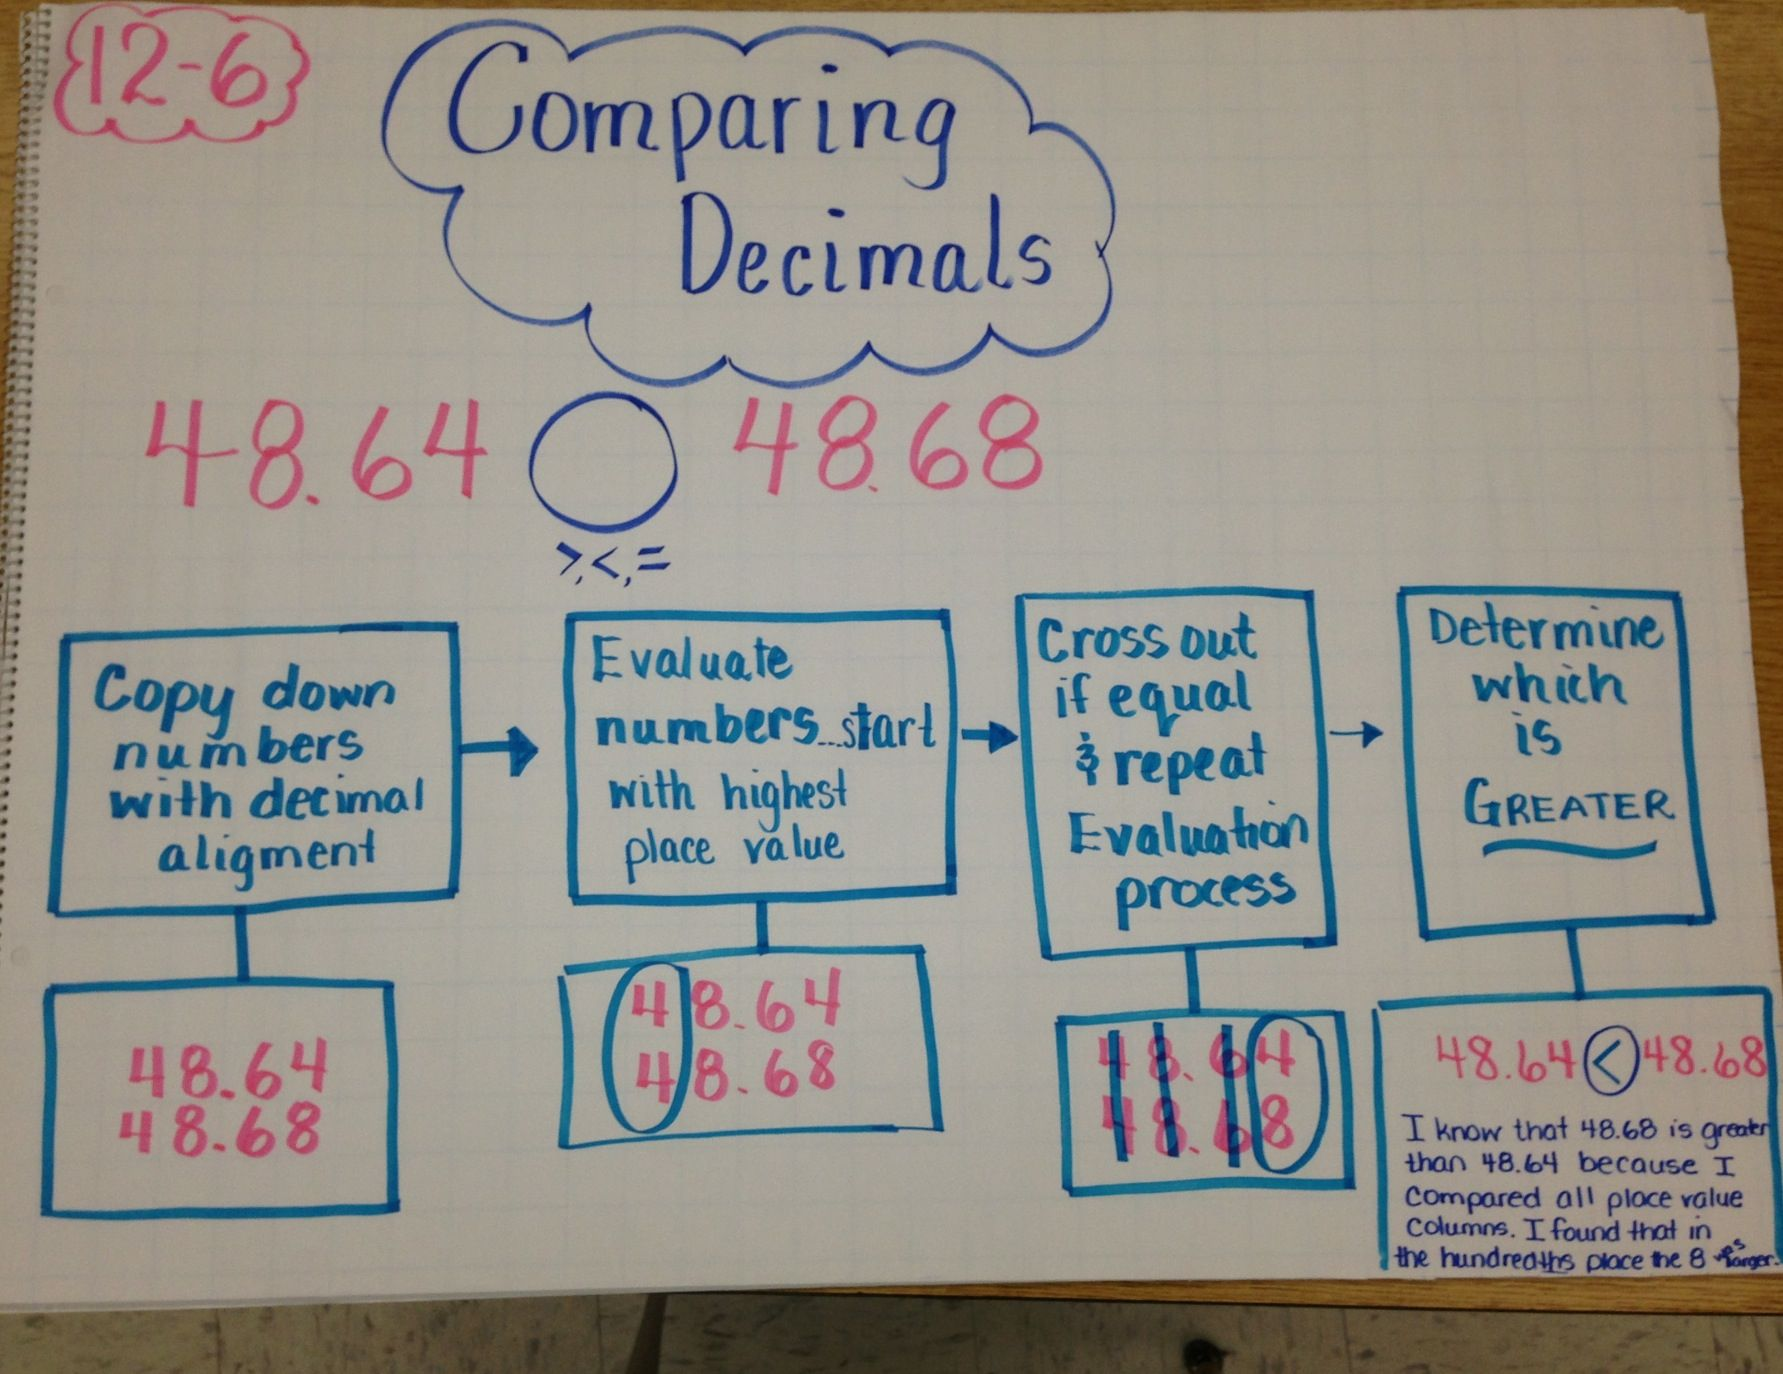 Comfortable Flow Map With Comparing Decimals Thinking Map Ideas ...